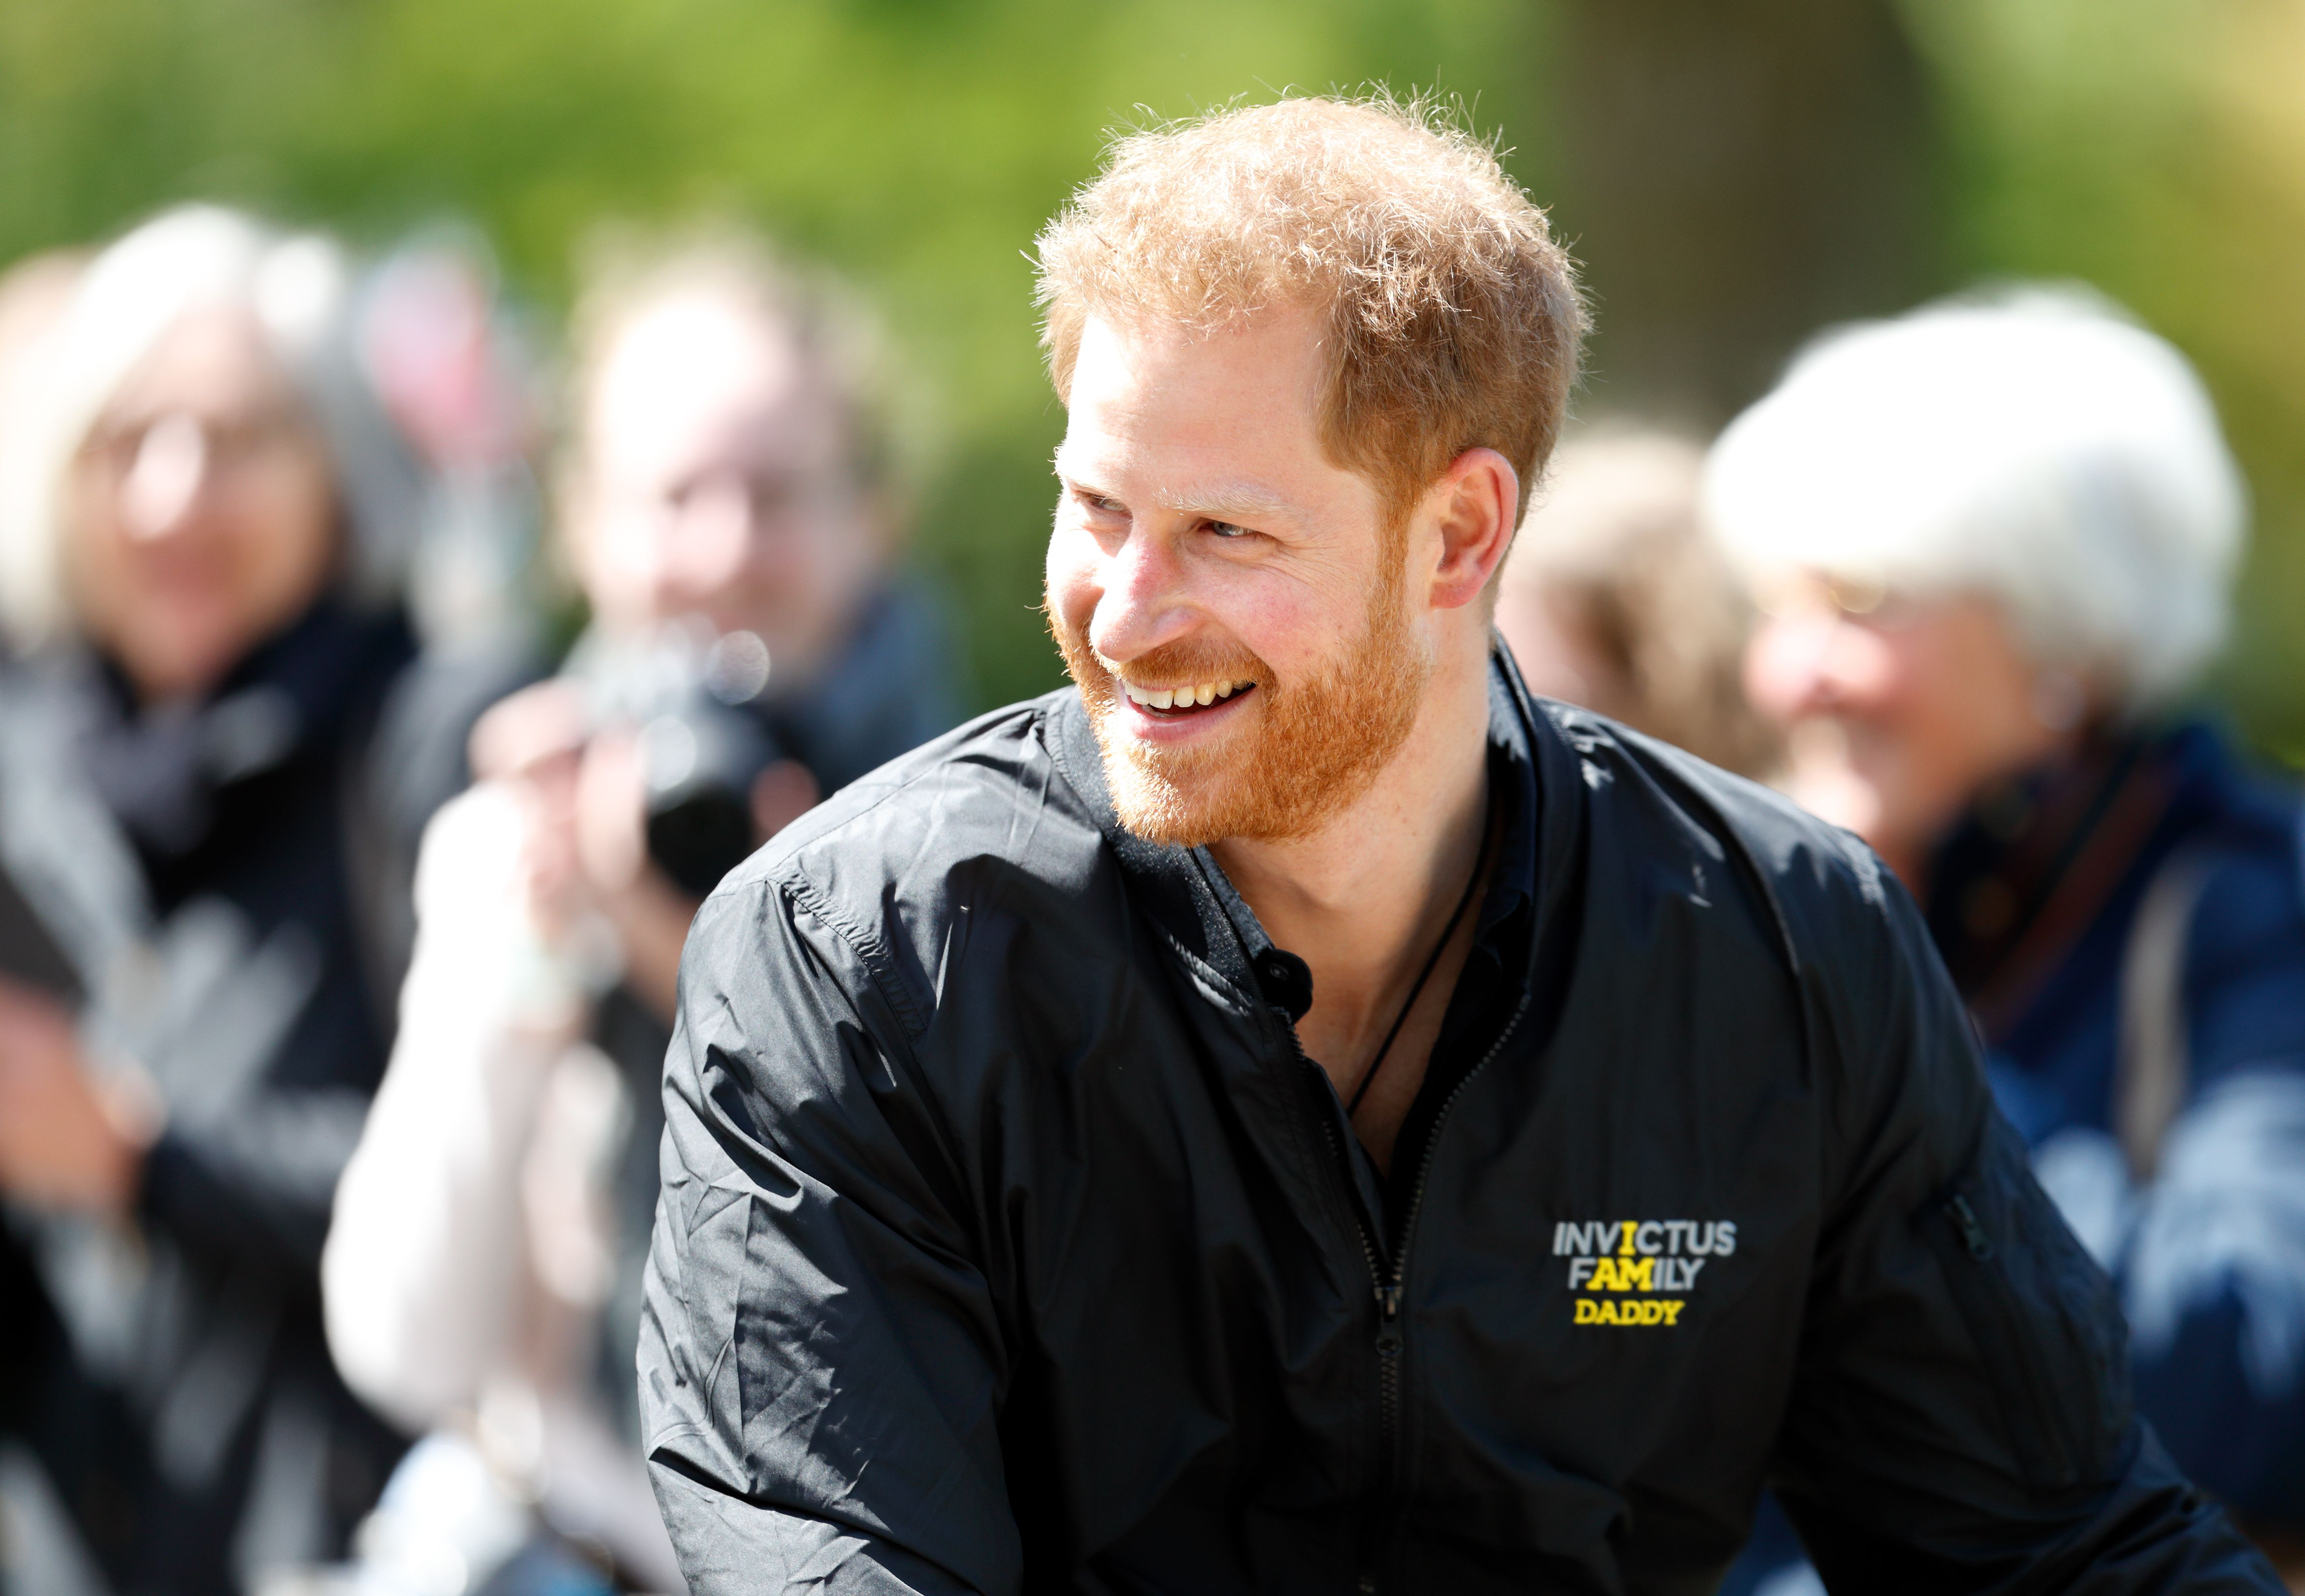 Prince Harry in his Invictus Games shirt